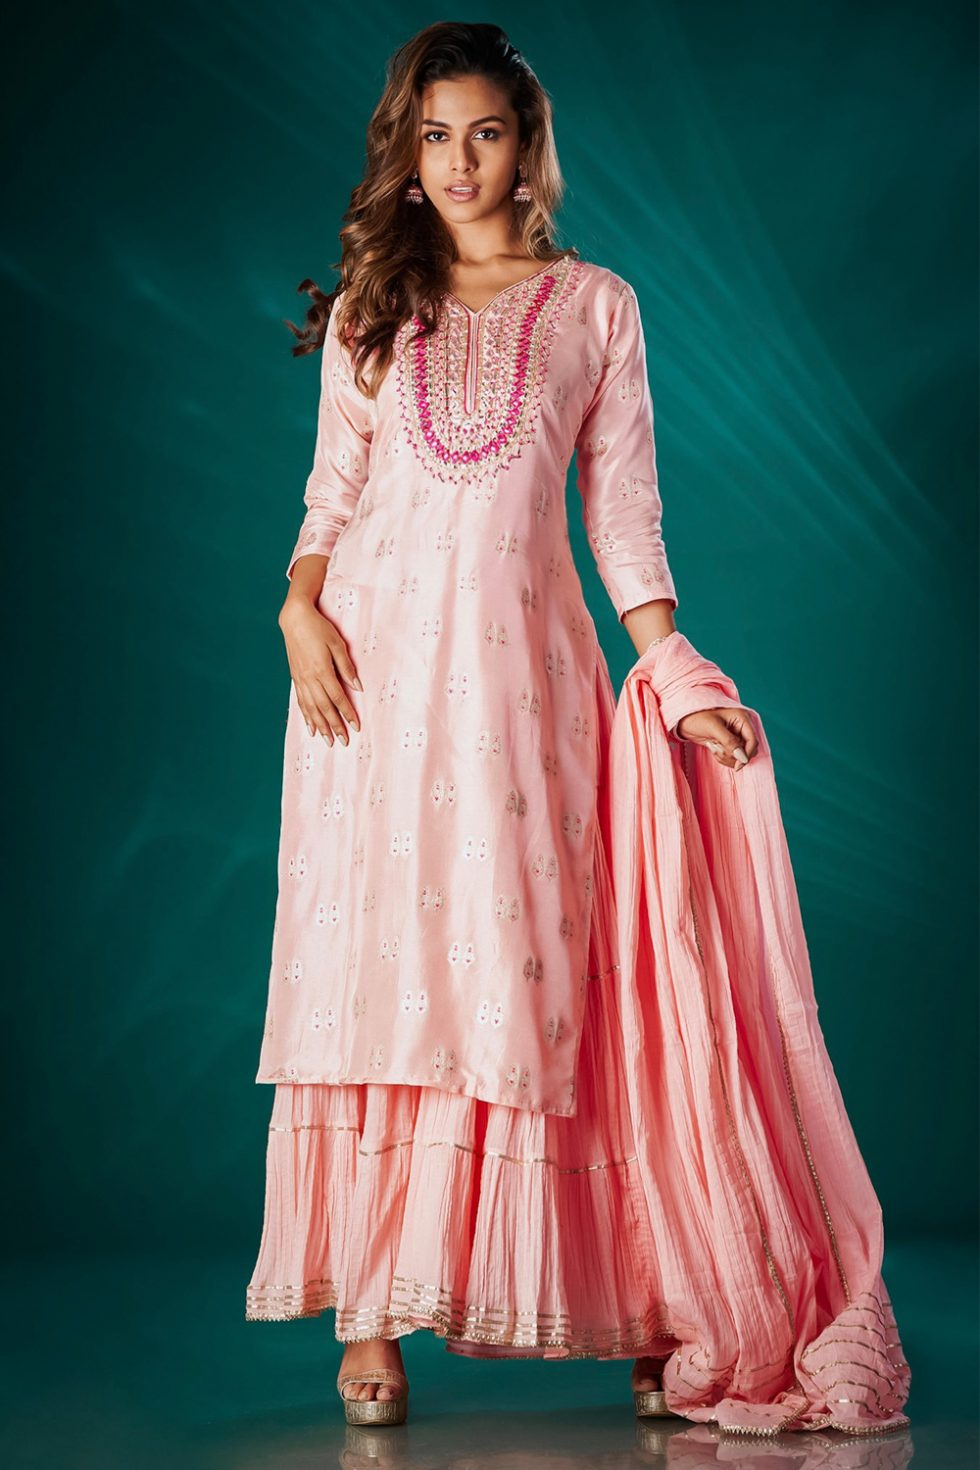 Rose peach tiered one piece kurti with an embroidered neckline paired with a matching dupatta and gold embellishments.